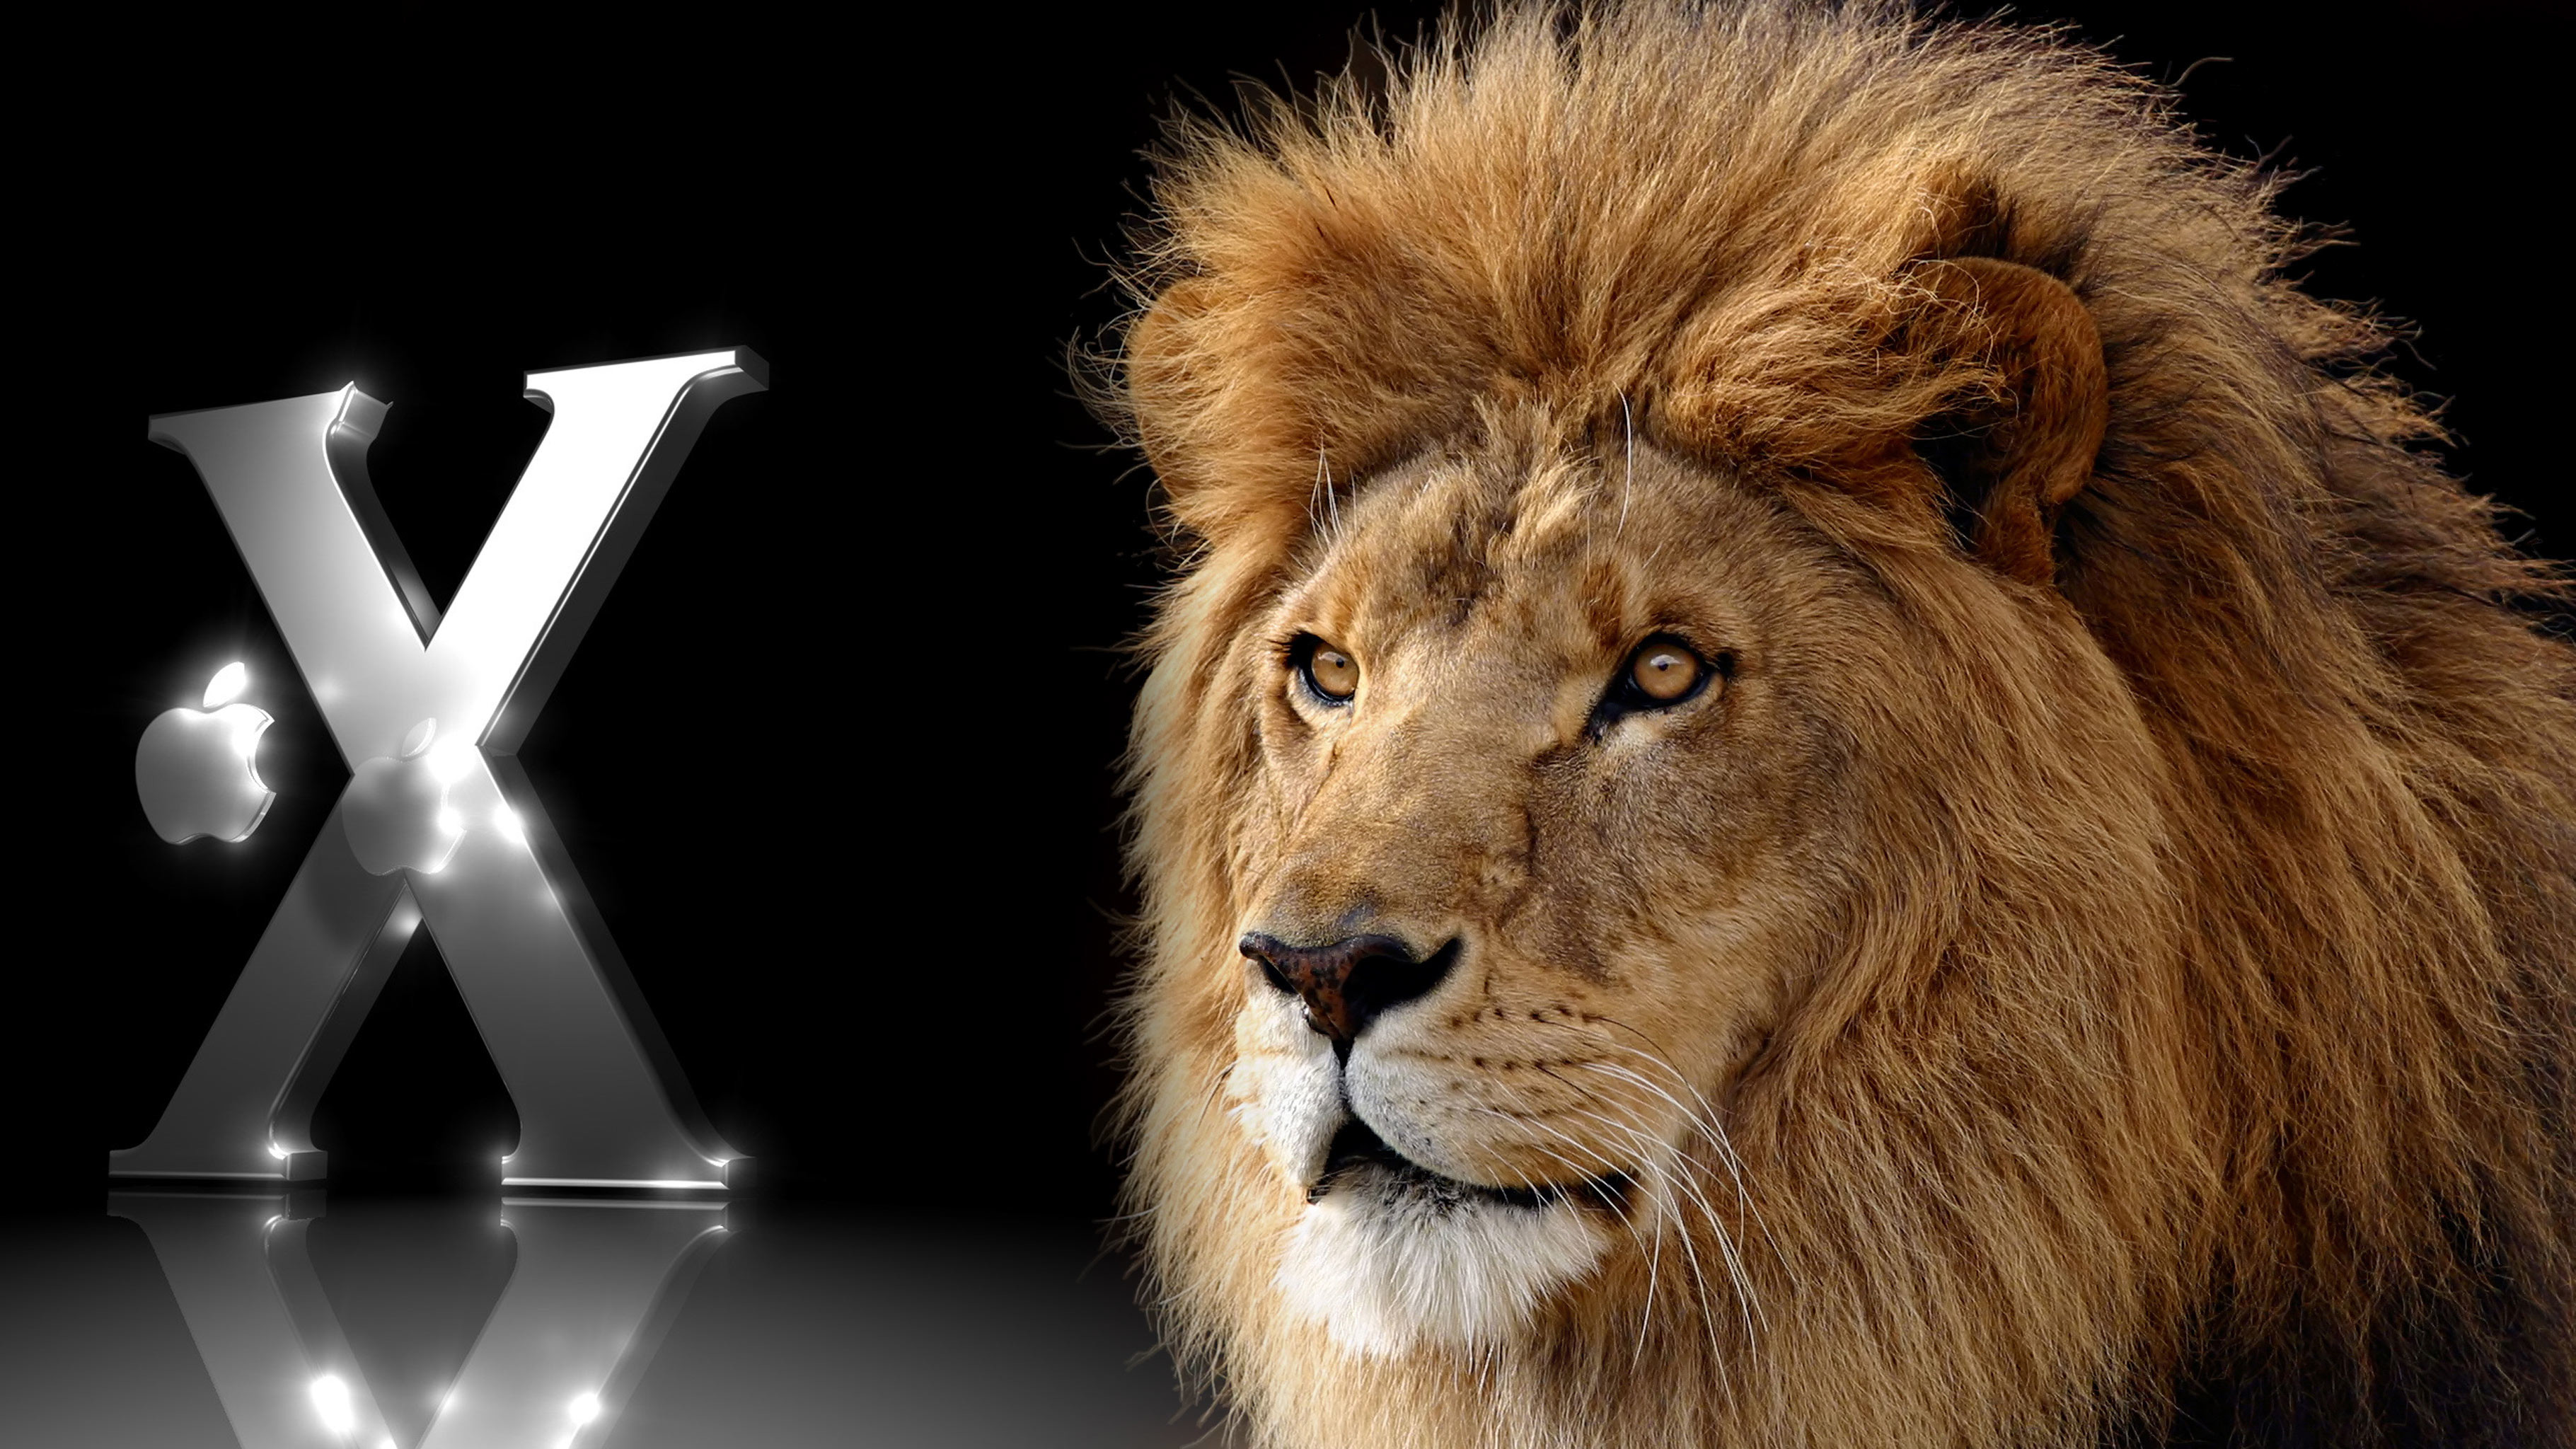 Lion Wallpapers Hd 81 Background Pictures